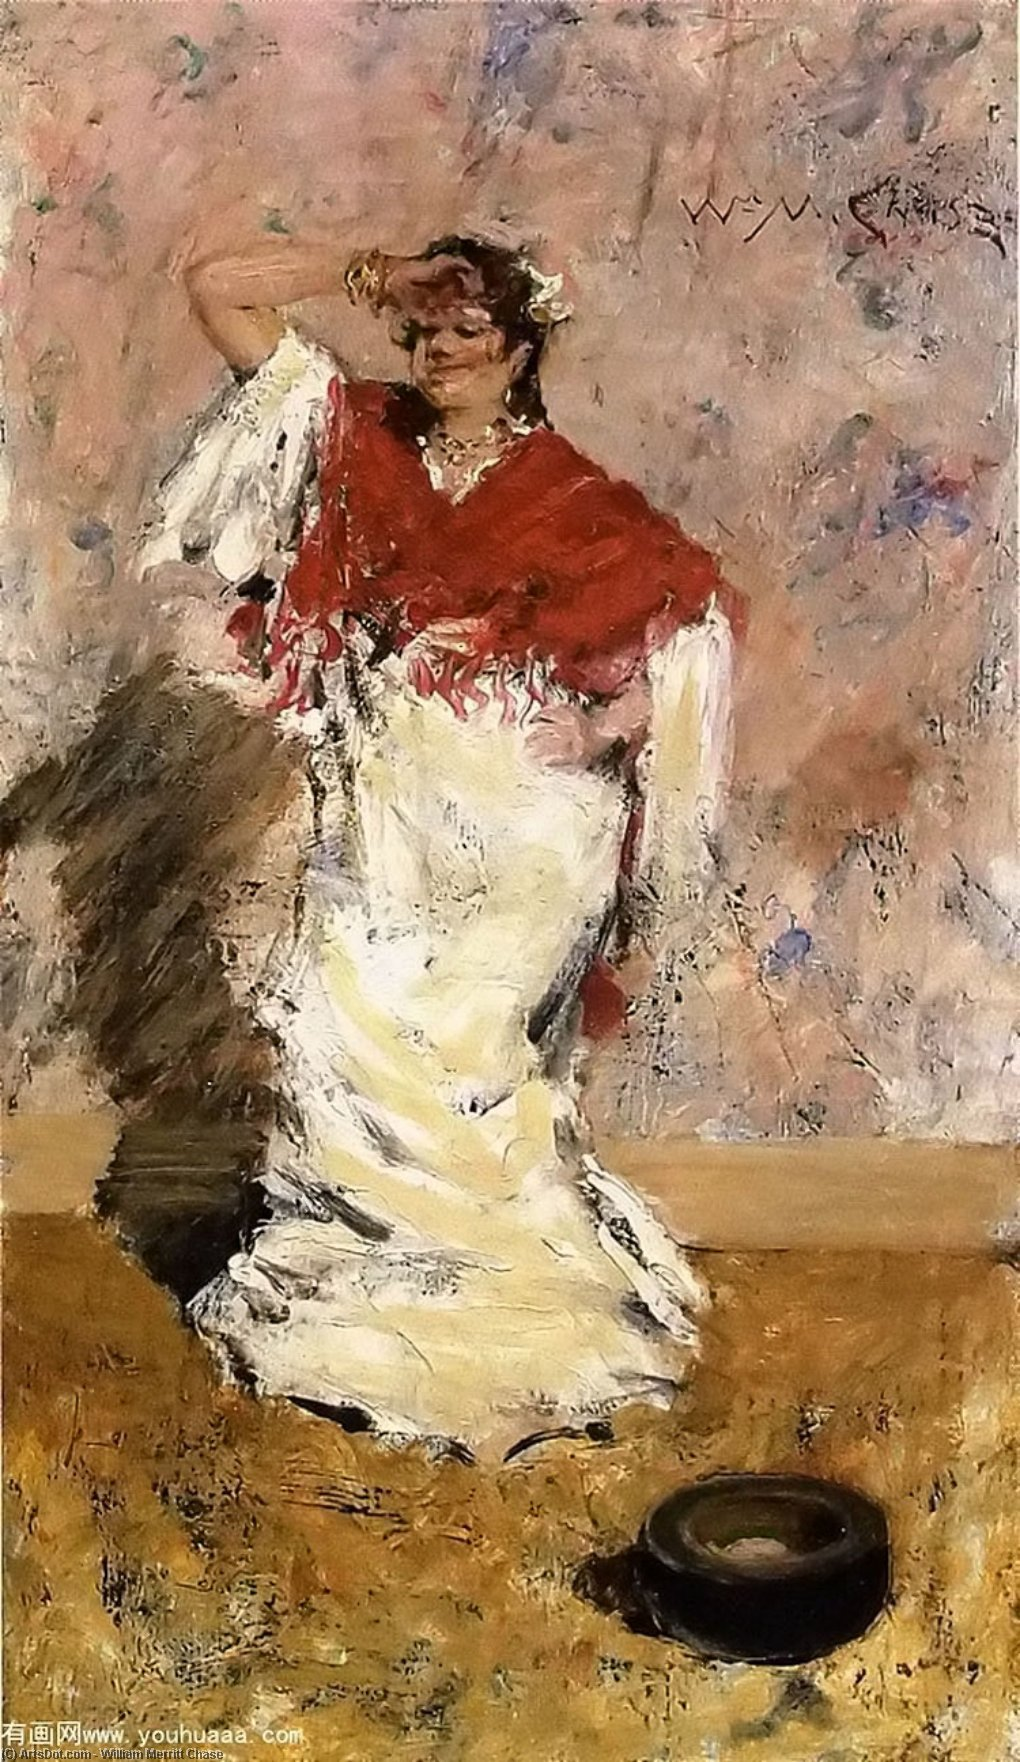 baile chica, óleo sobre lienzo de William Merritt Chase (1849-1916, United States)